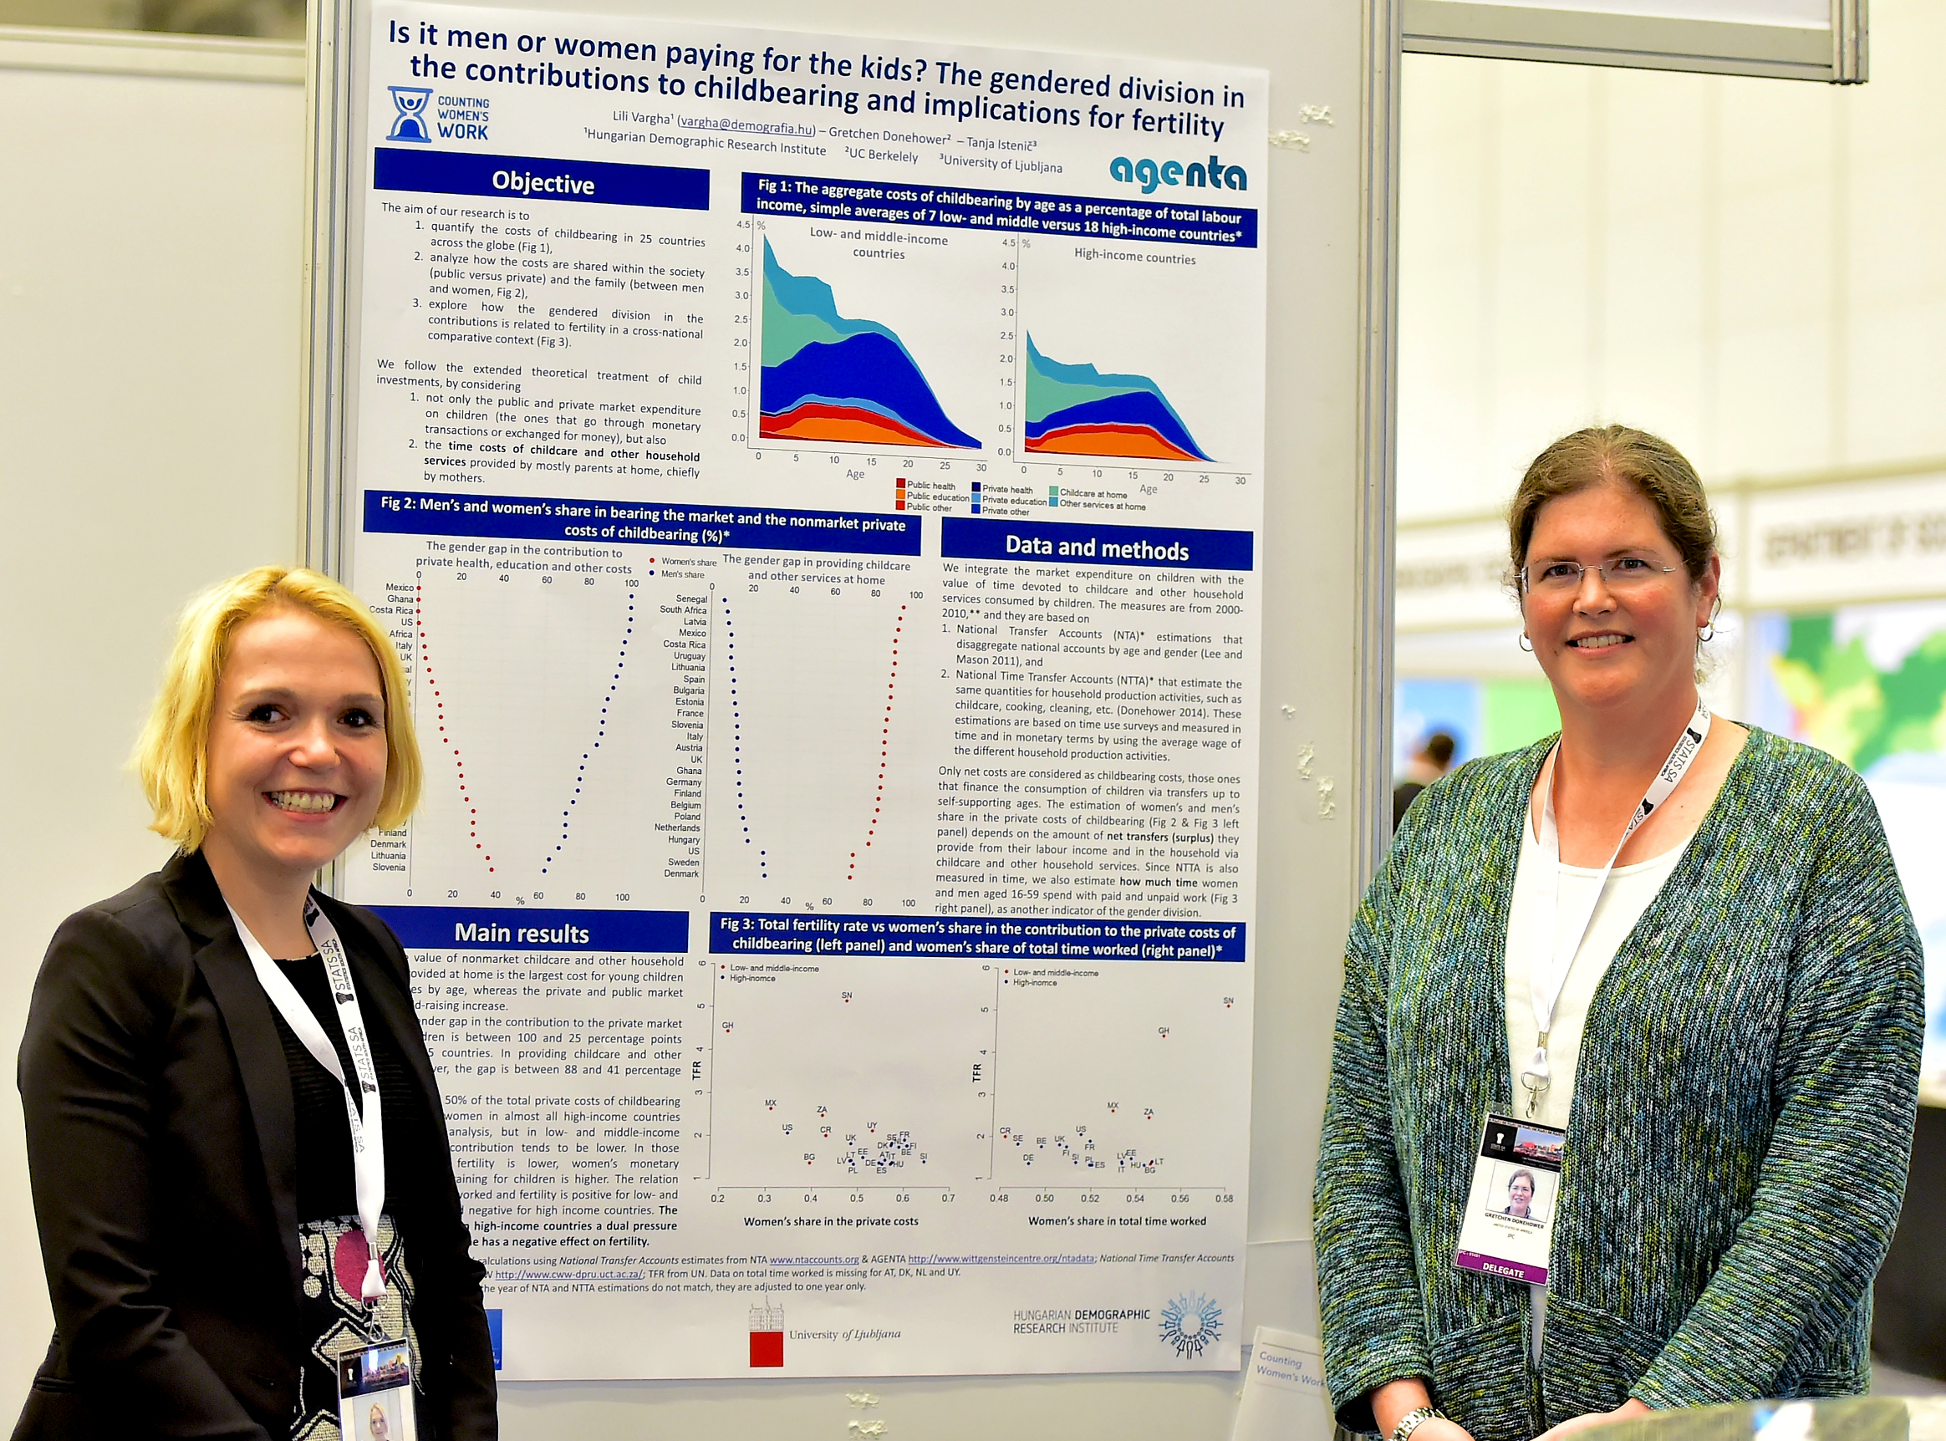 Tanja Istenic of the University of Ljubljana, Faculty of Economics, and Gretchen Donehower of UC Berkeley Department of Demography with the winning poster of Day 4.